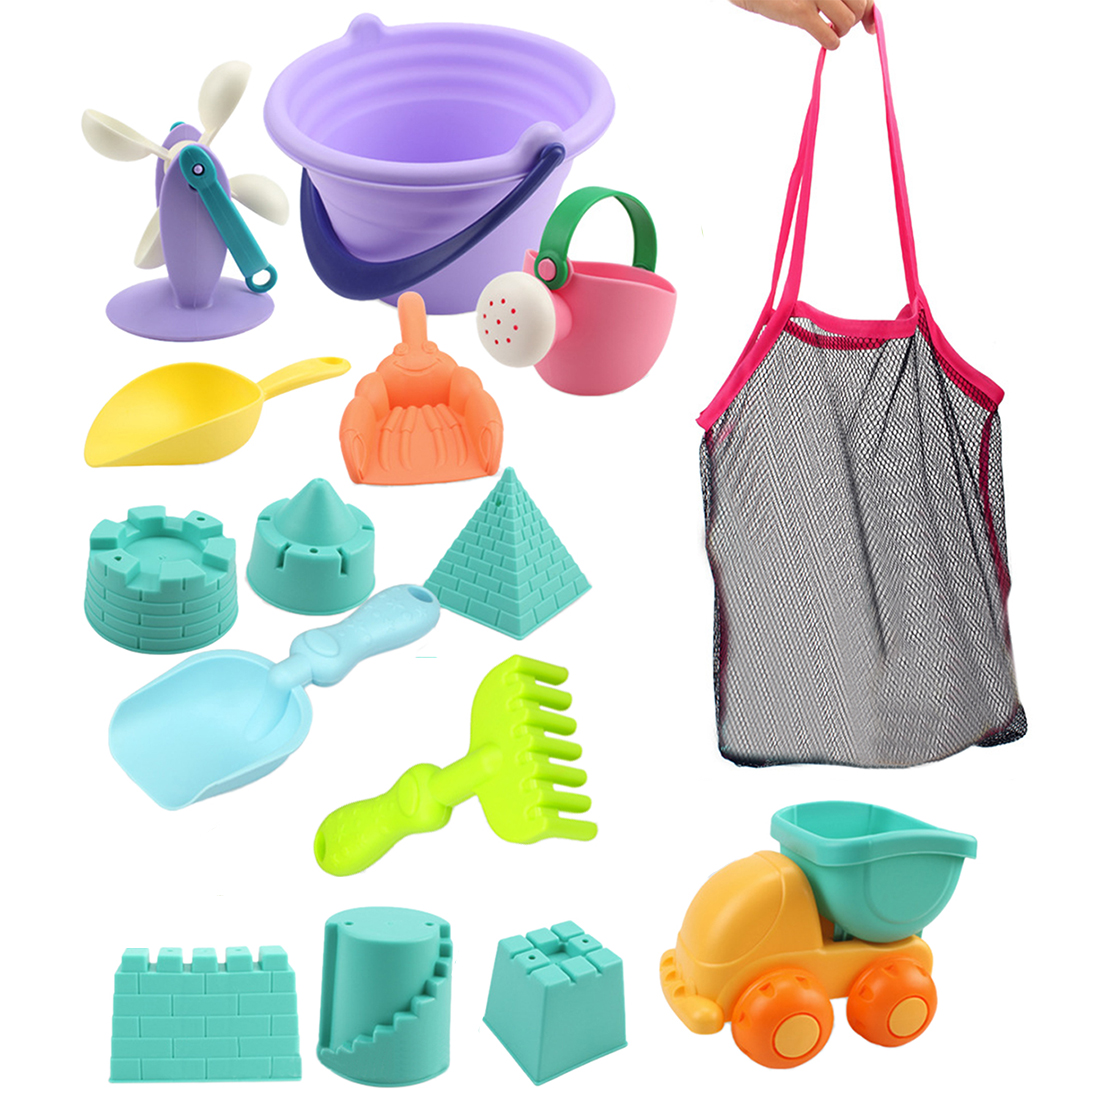 Hot 15Pcs/set Beach Sand Toys Soft Rubber Beach Bucket Playset Fun Toys Gift For Kids Summer Outdoor Fun Drop Ship -Random Color